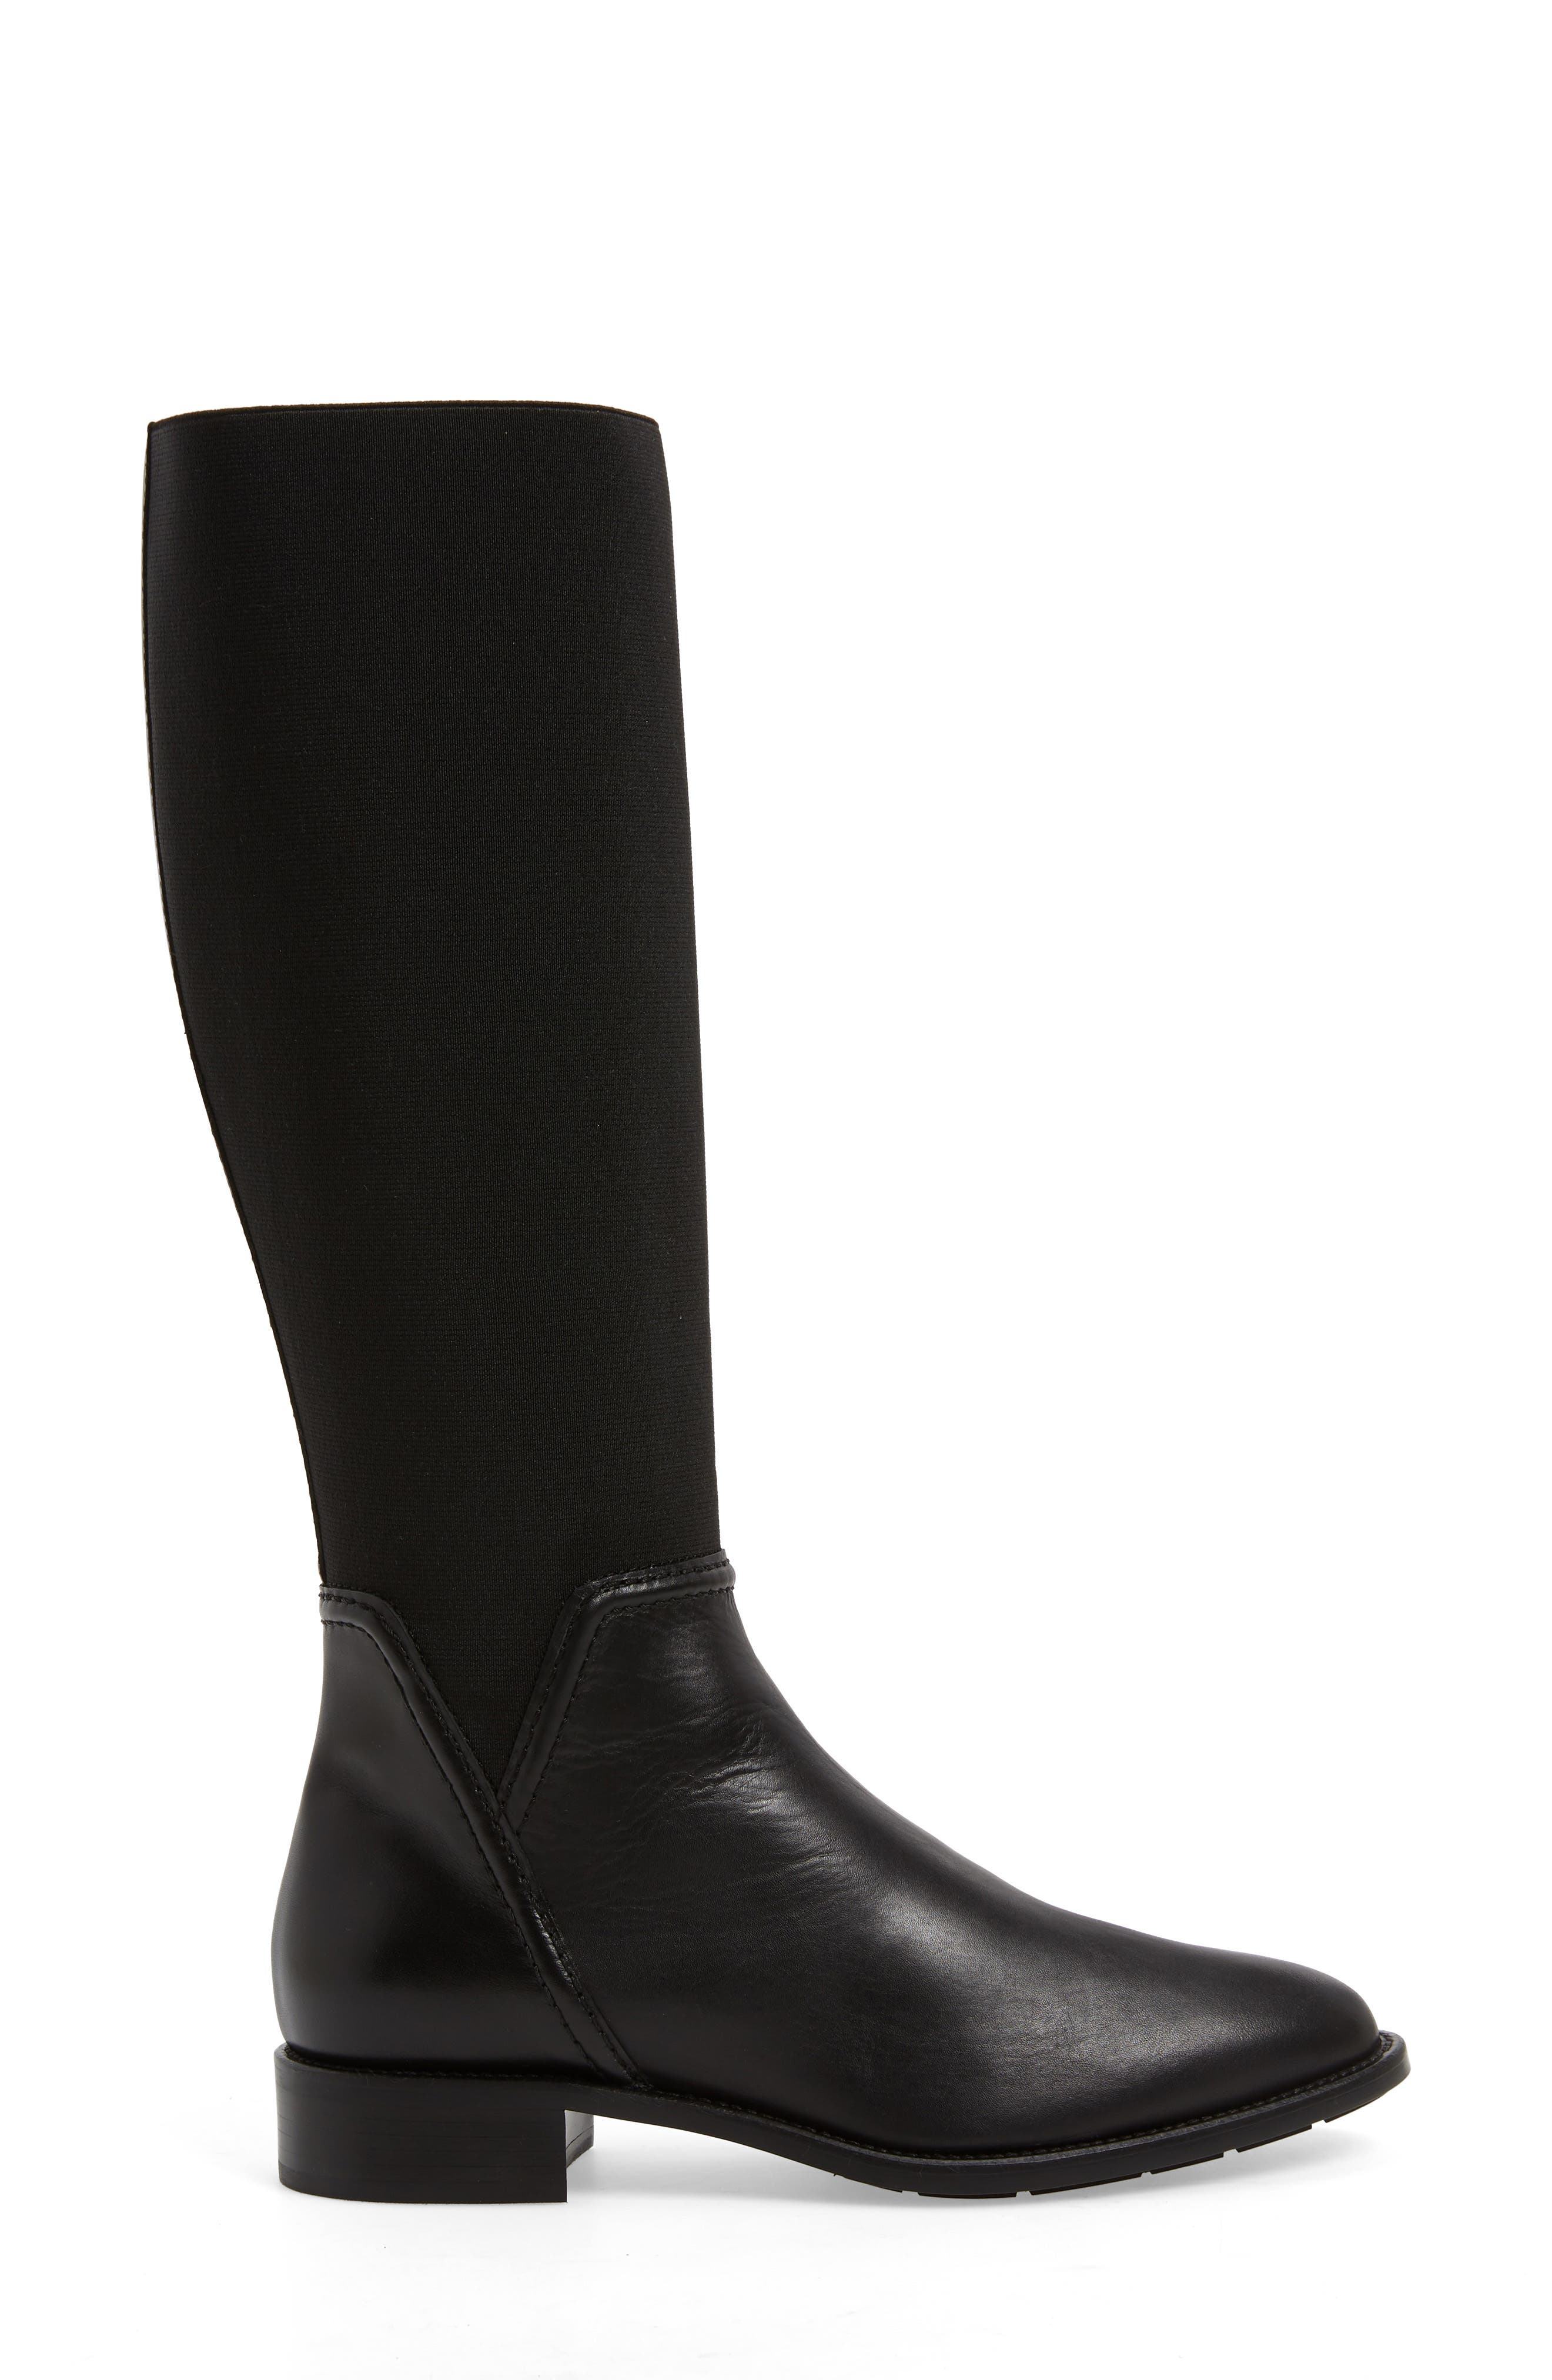 Nanina Water Resistant Riding Boot,                             Alternate thumbnail 3, color,                             BLACK